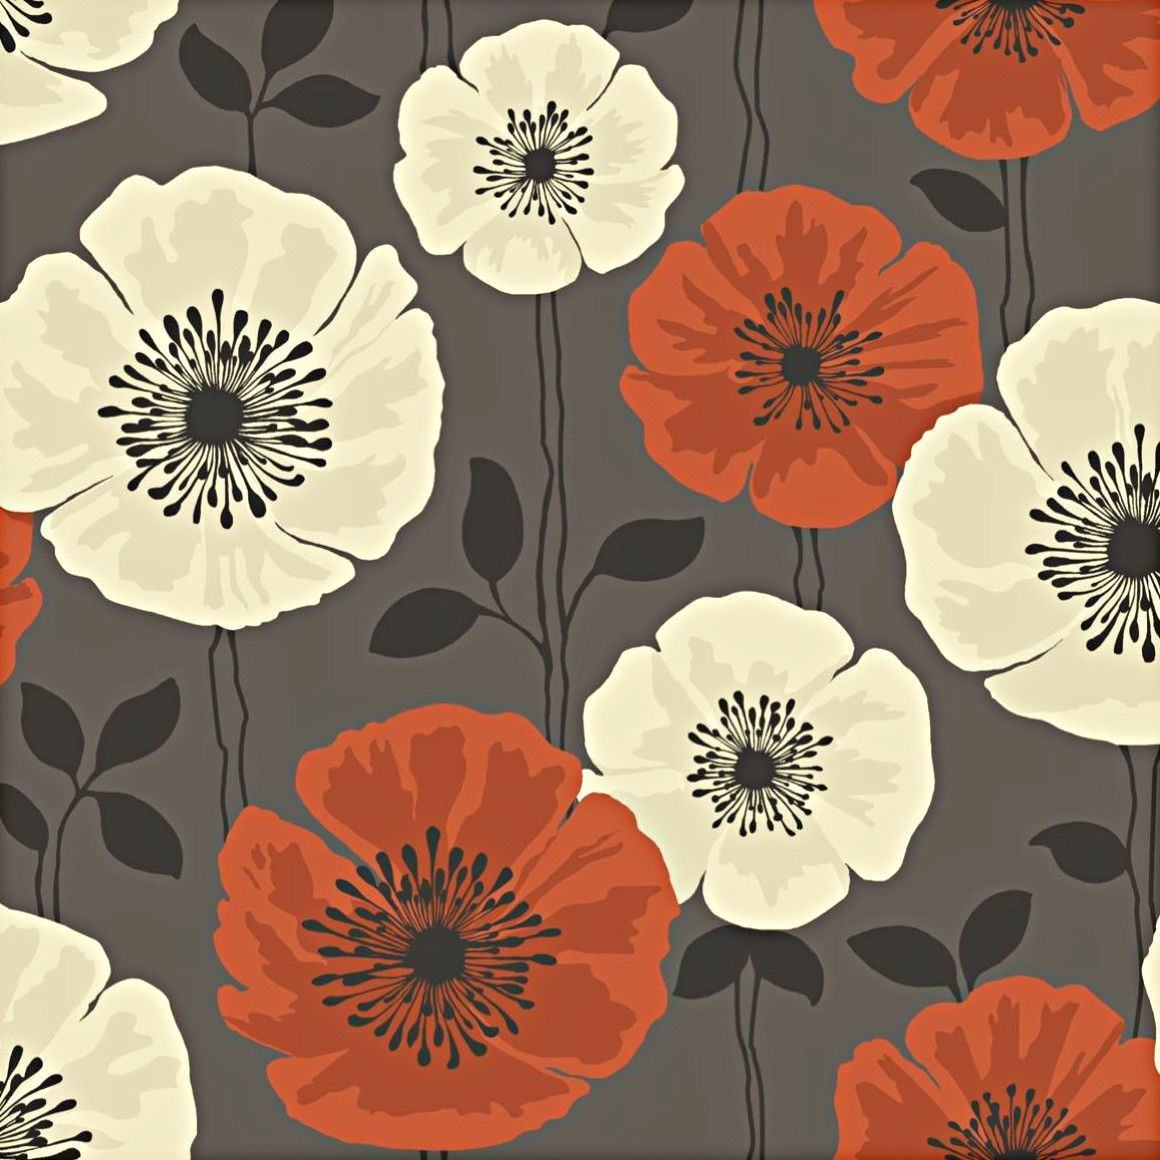 Floral Poppies Wallpaper Leaves Flowers Poppy Brown Orange Cream